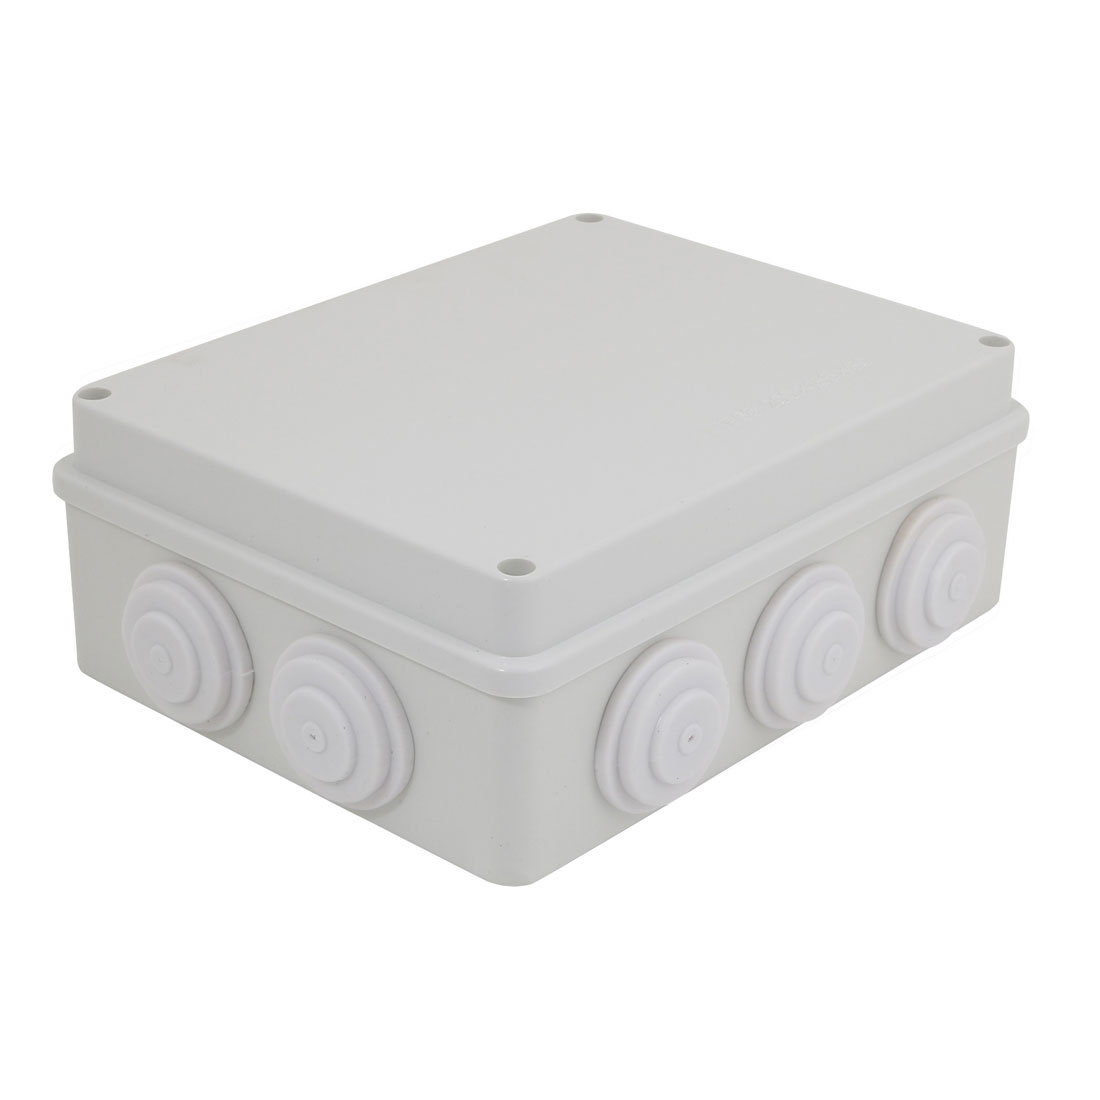 200mmx155mmx80mm Electronic ABS Plastic DIY Junction Box Enclosure Case Gray